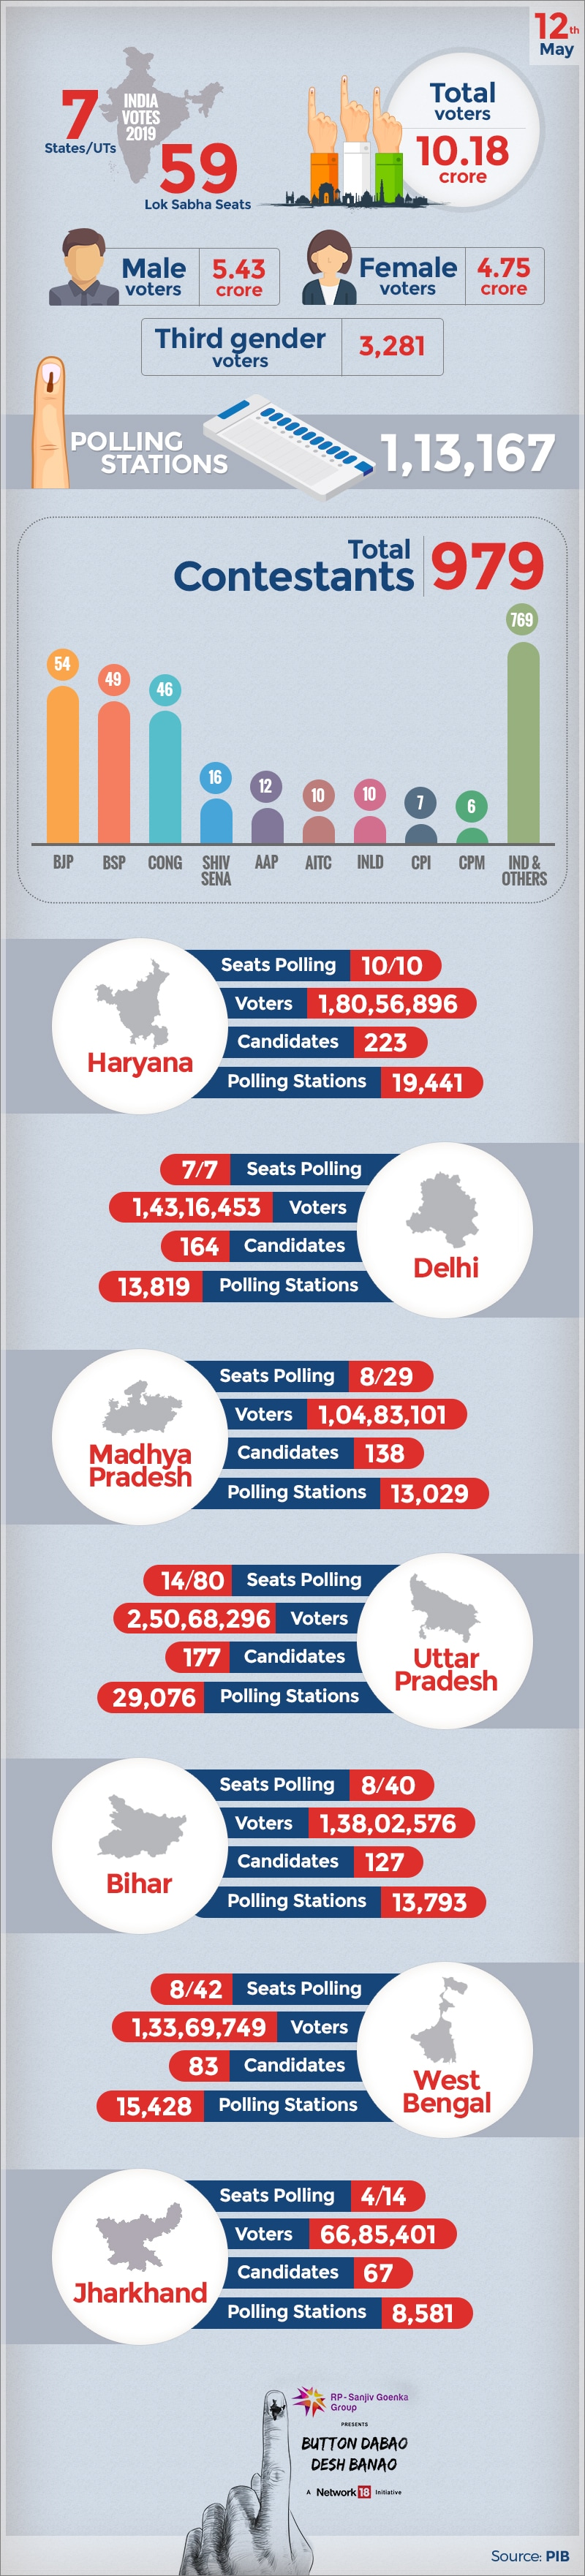 election-infographic_(phase-6)_FINAL